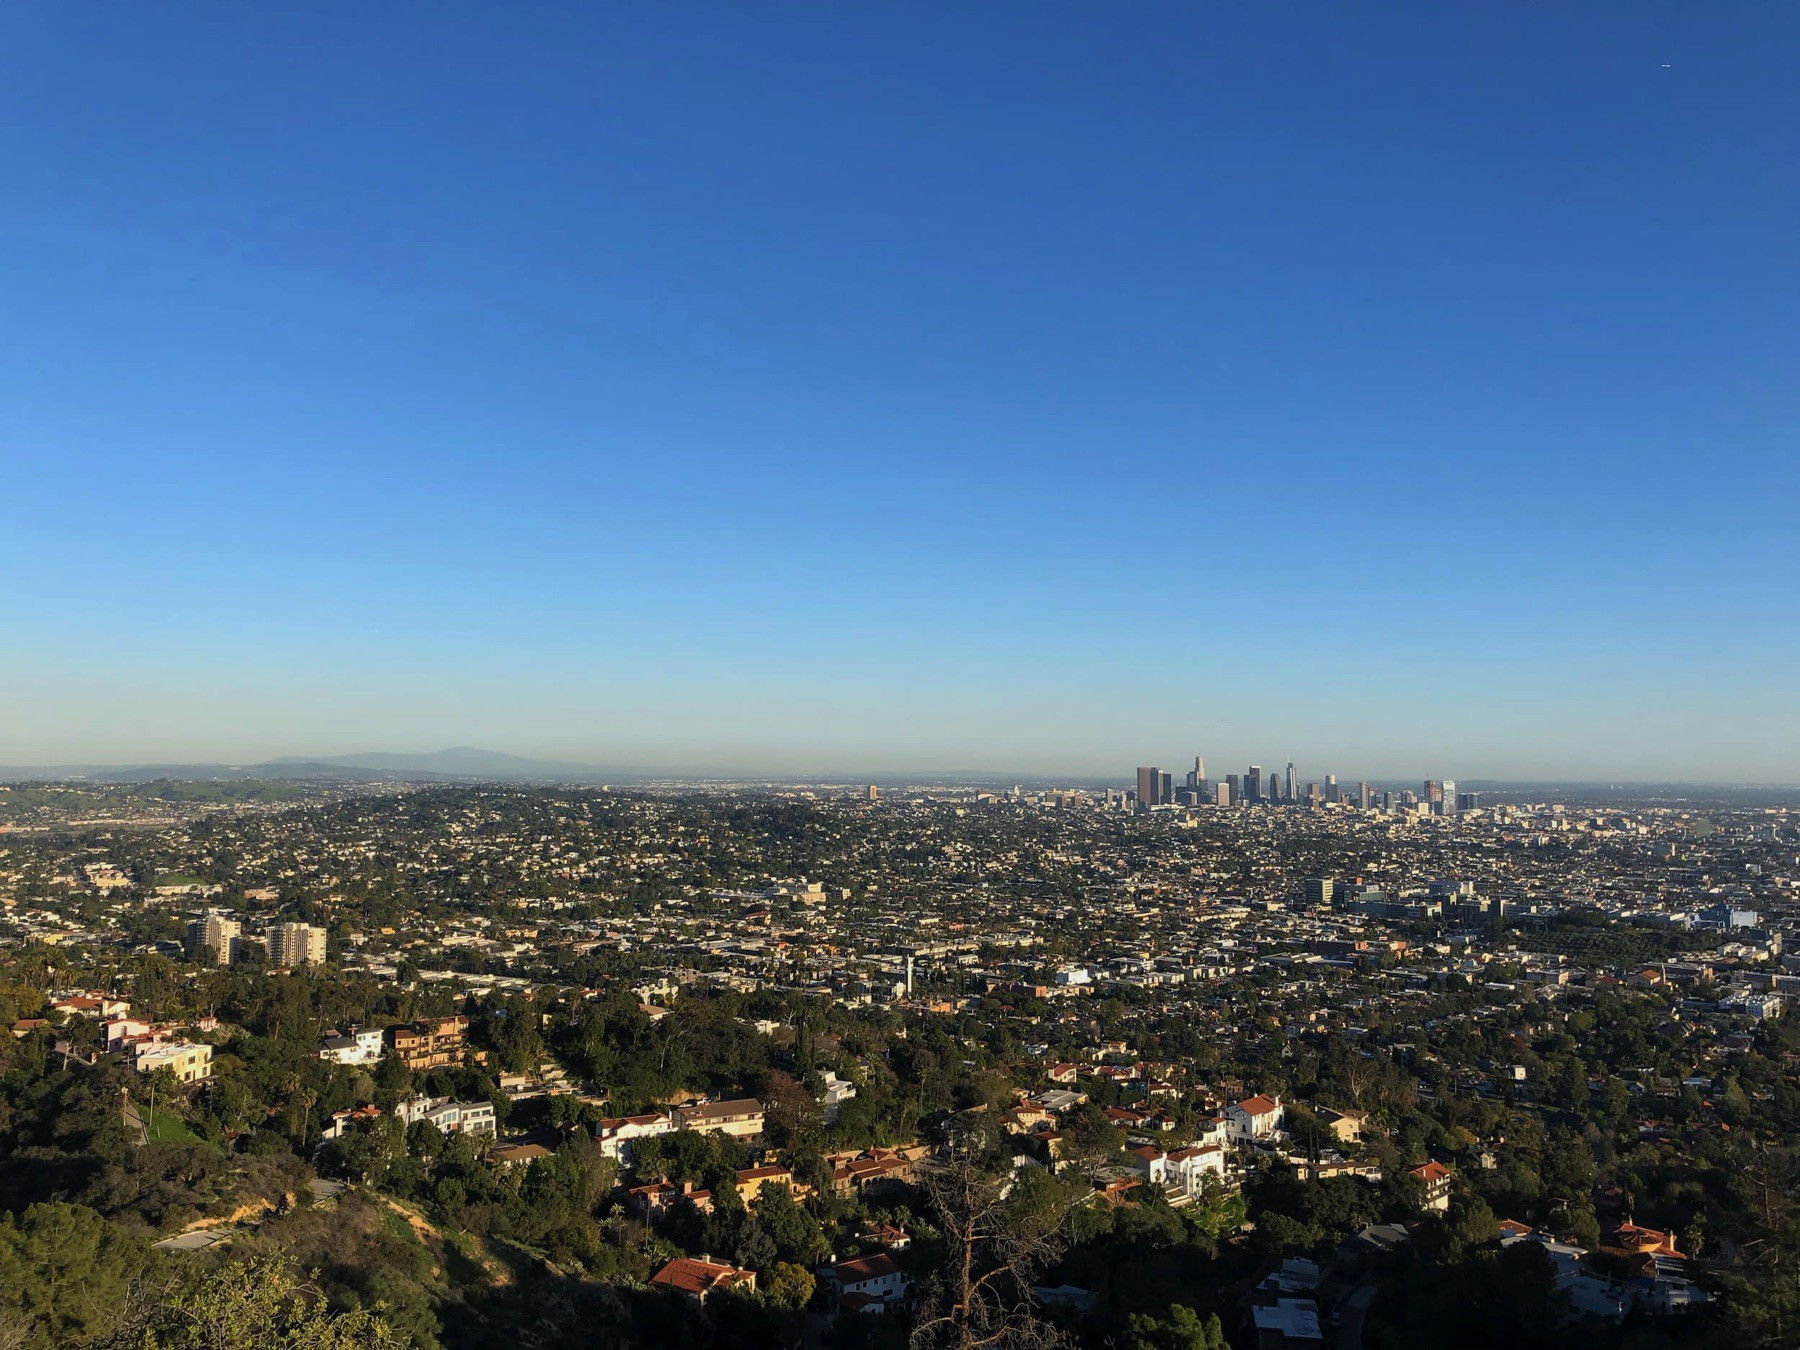 An image of the Los Angeles skyline taken from the Griffith Observatory.